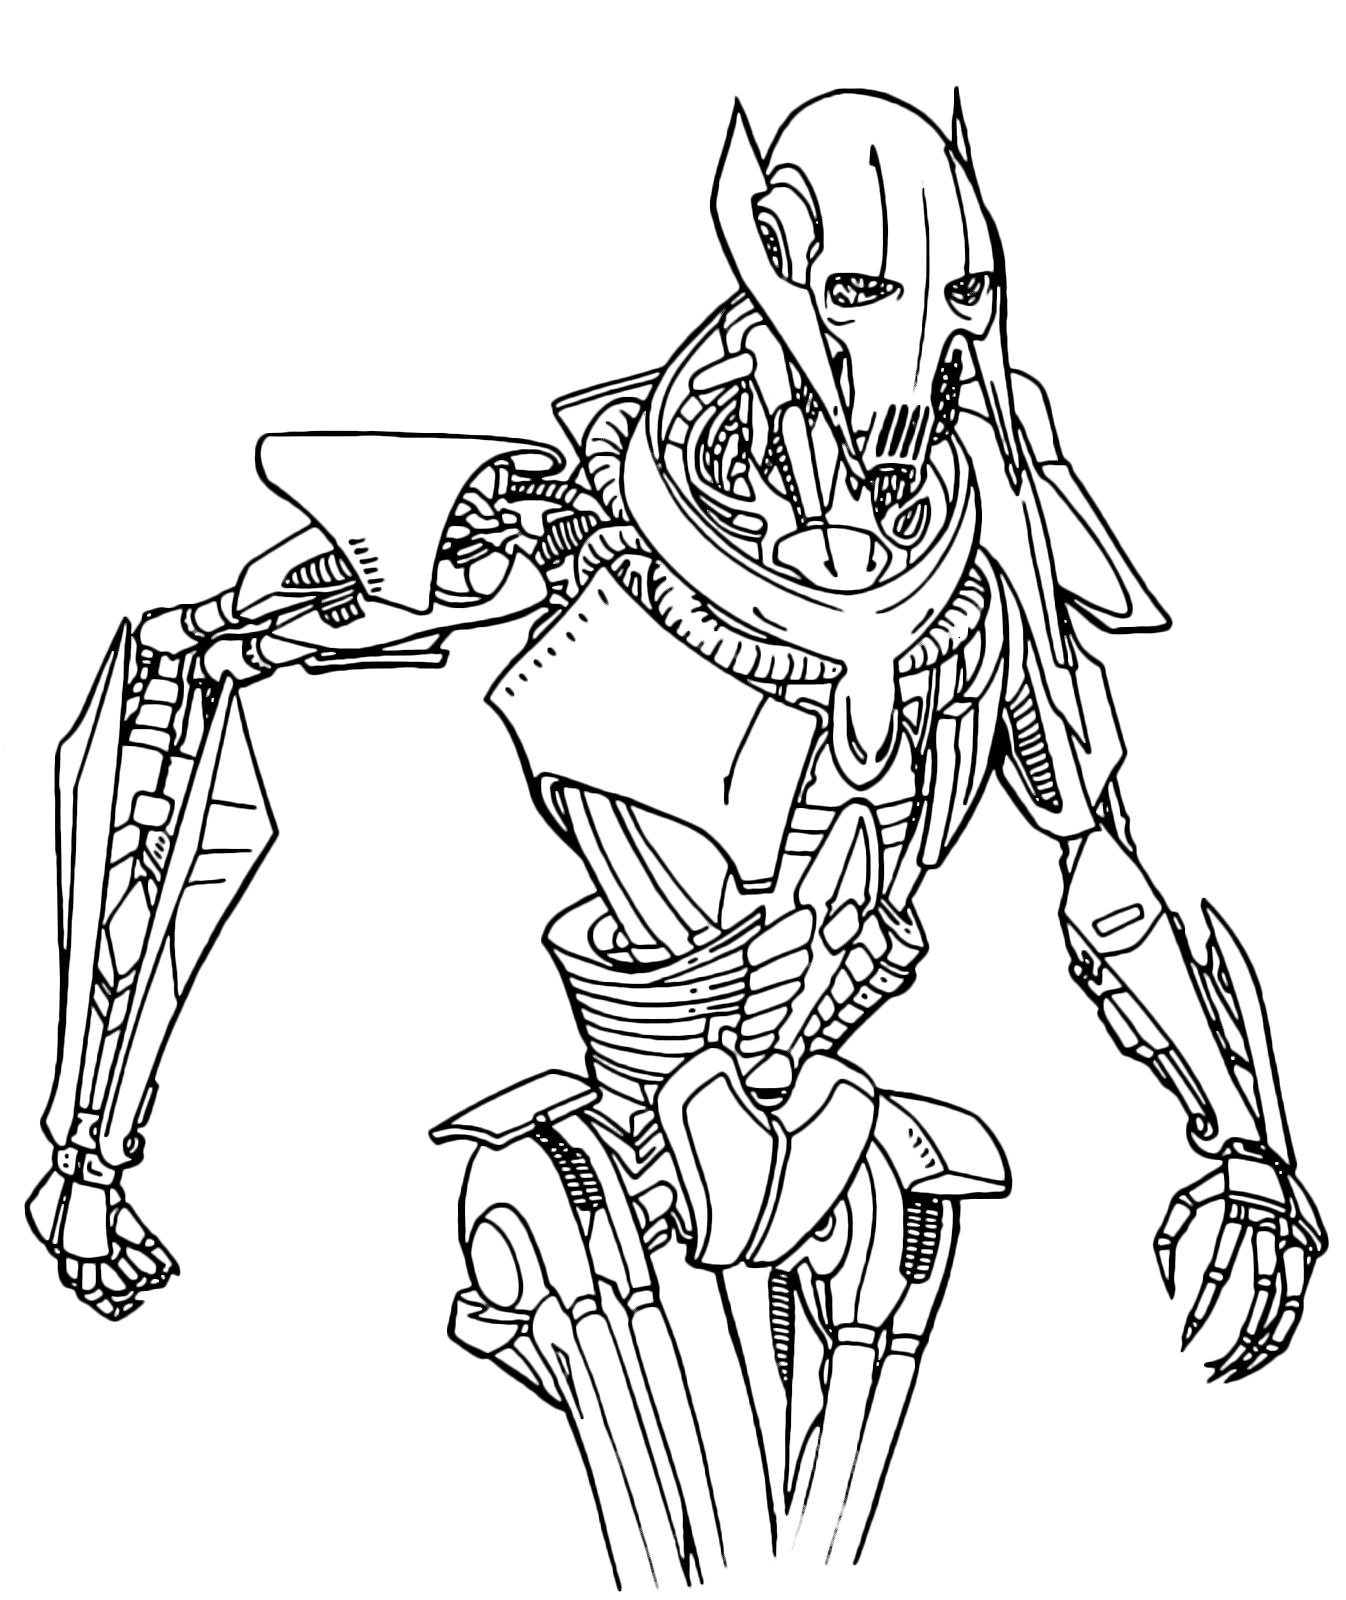 coloring pages general grievous | Star Wars - General Grievous is approaching menacingly